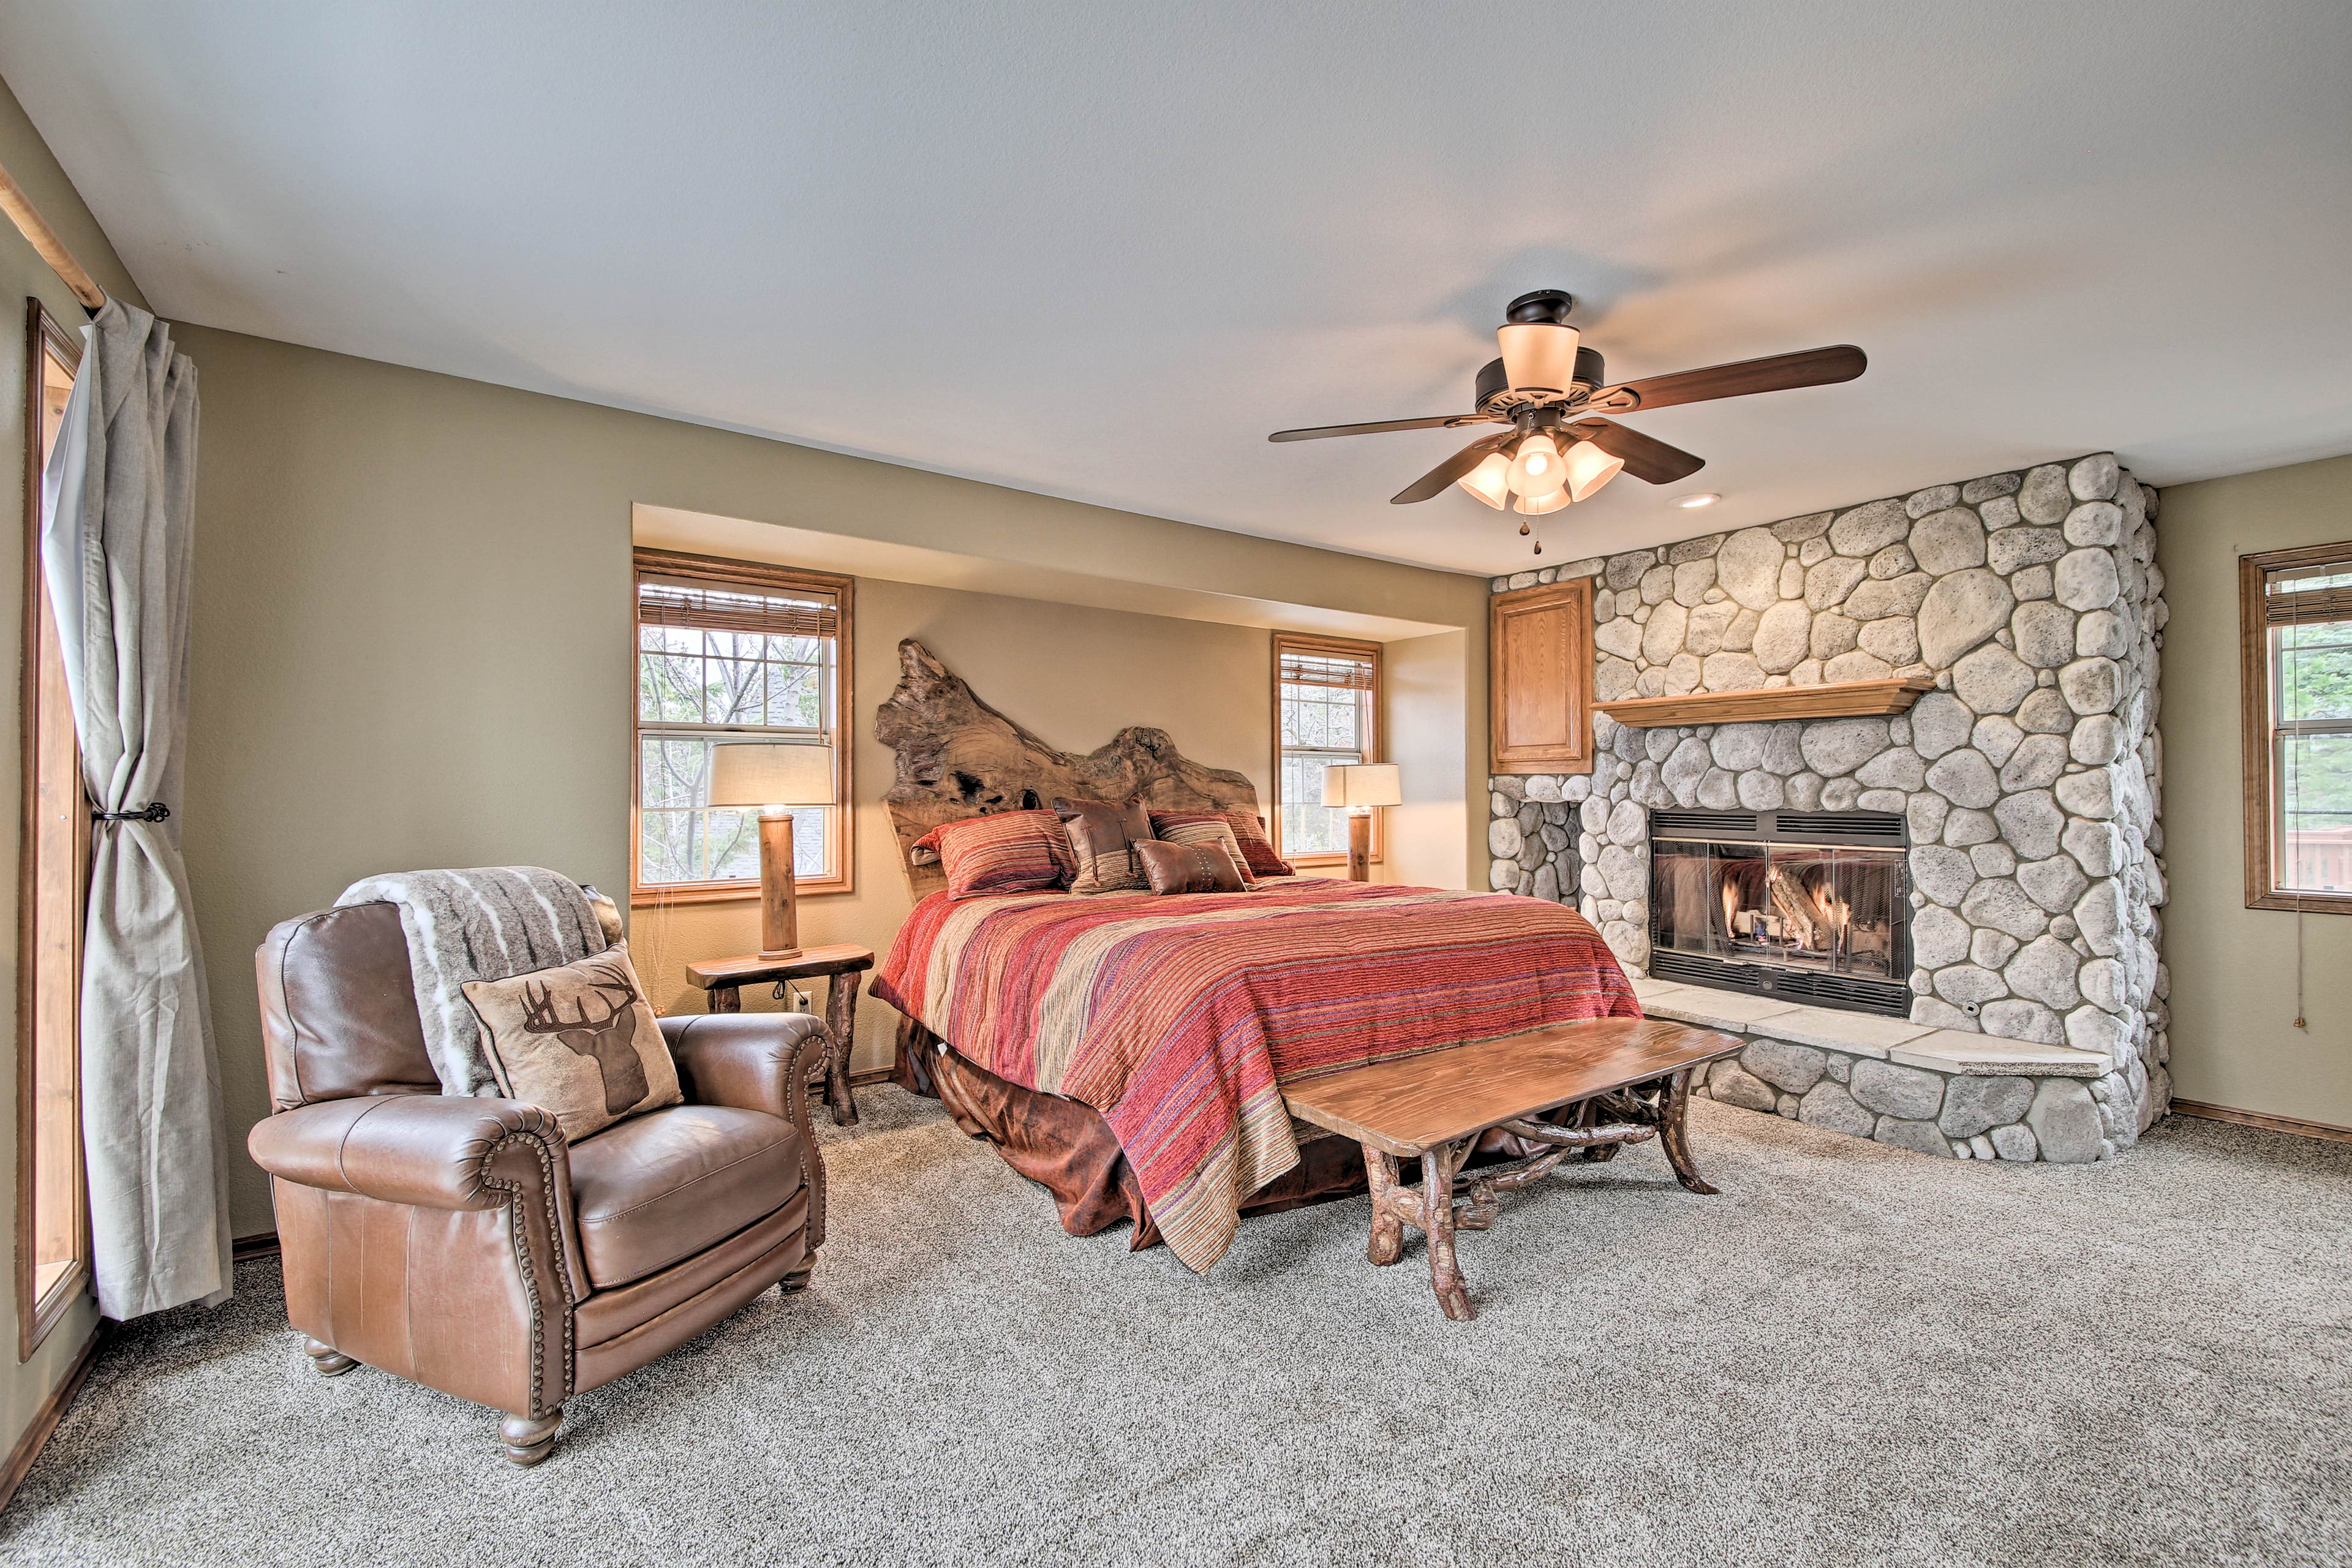 Sneak away for fireside reading in the comfort of the king bed.